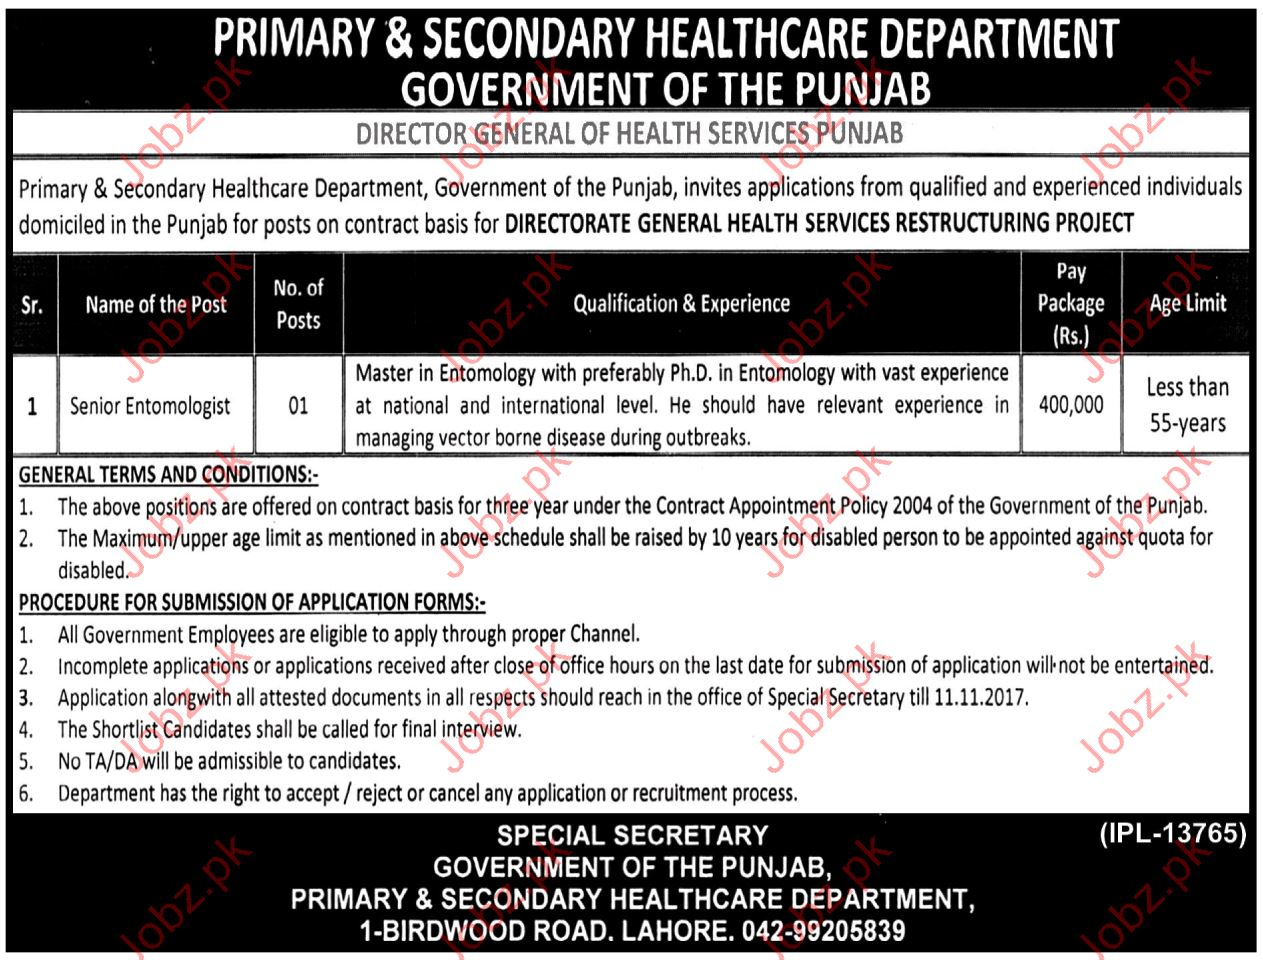 Primary & Secondary Healthcare Department Jobs Punjab